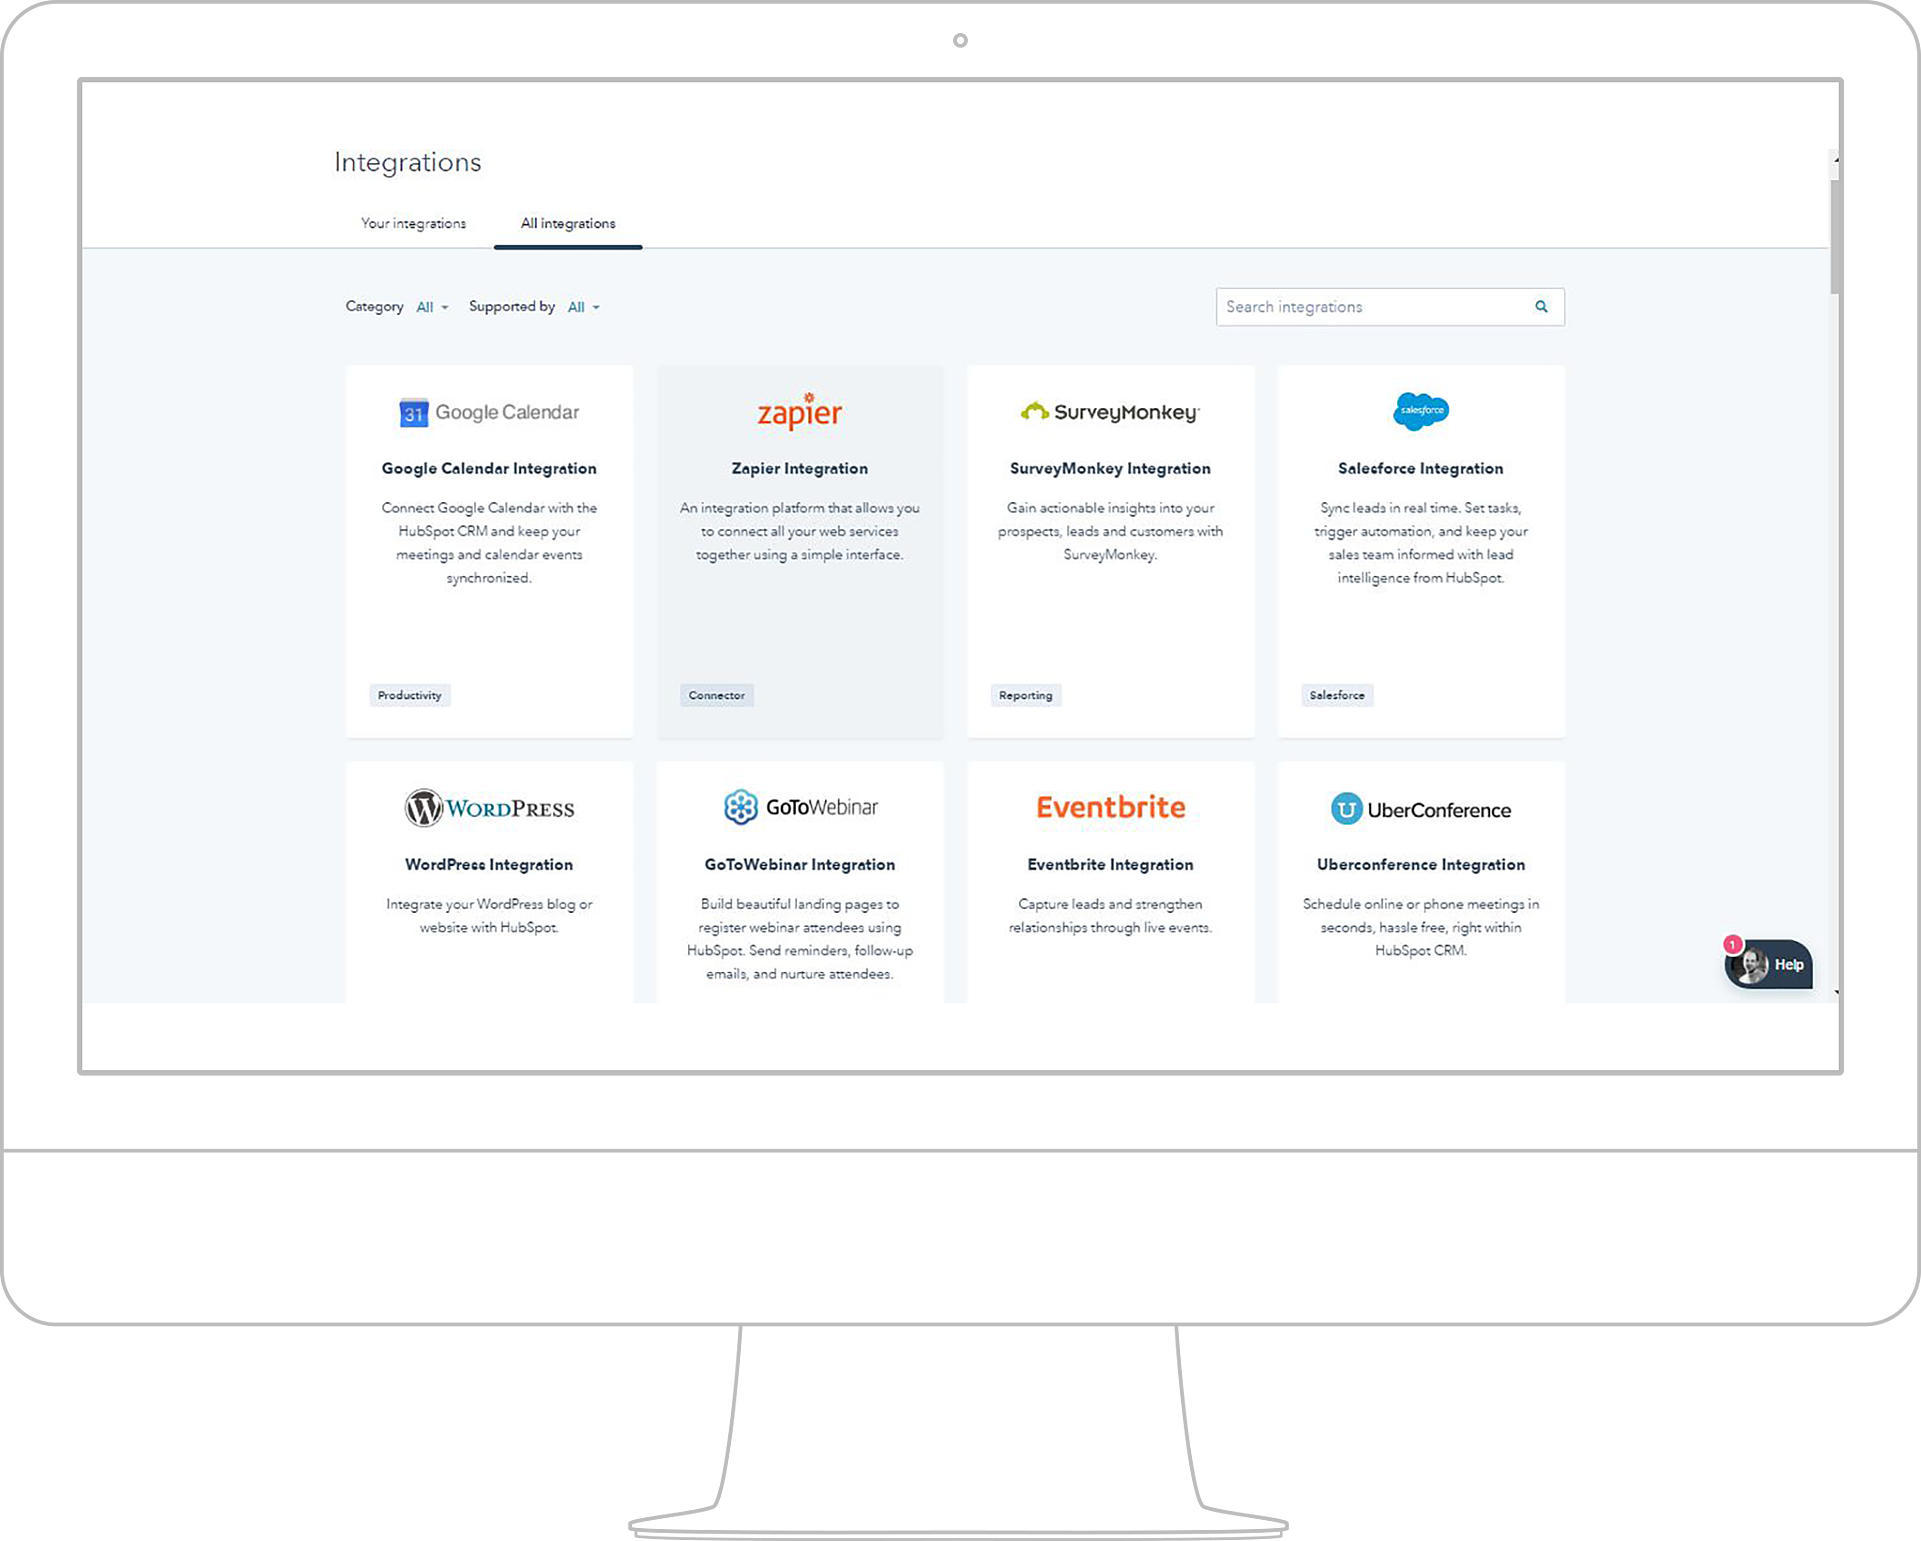 HubSpot Integrations can be made with many of the most popular digital marketing software and tools